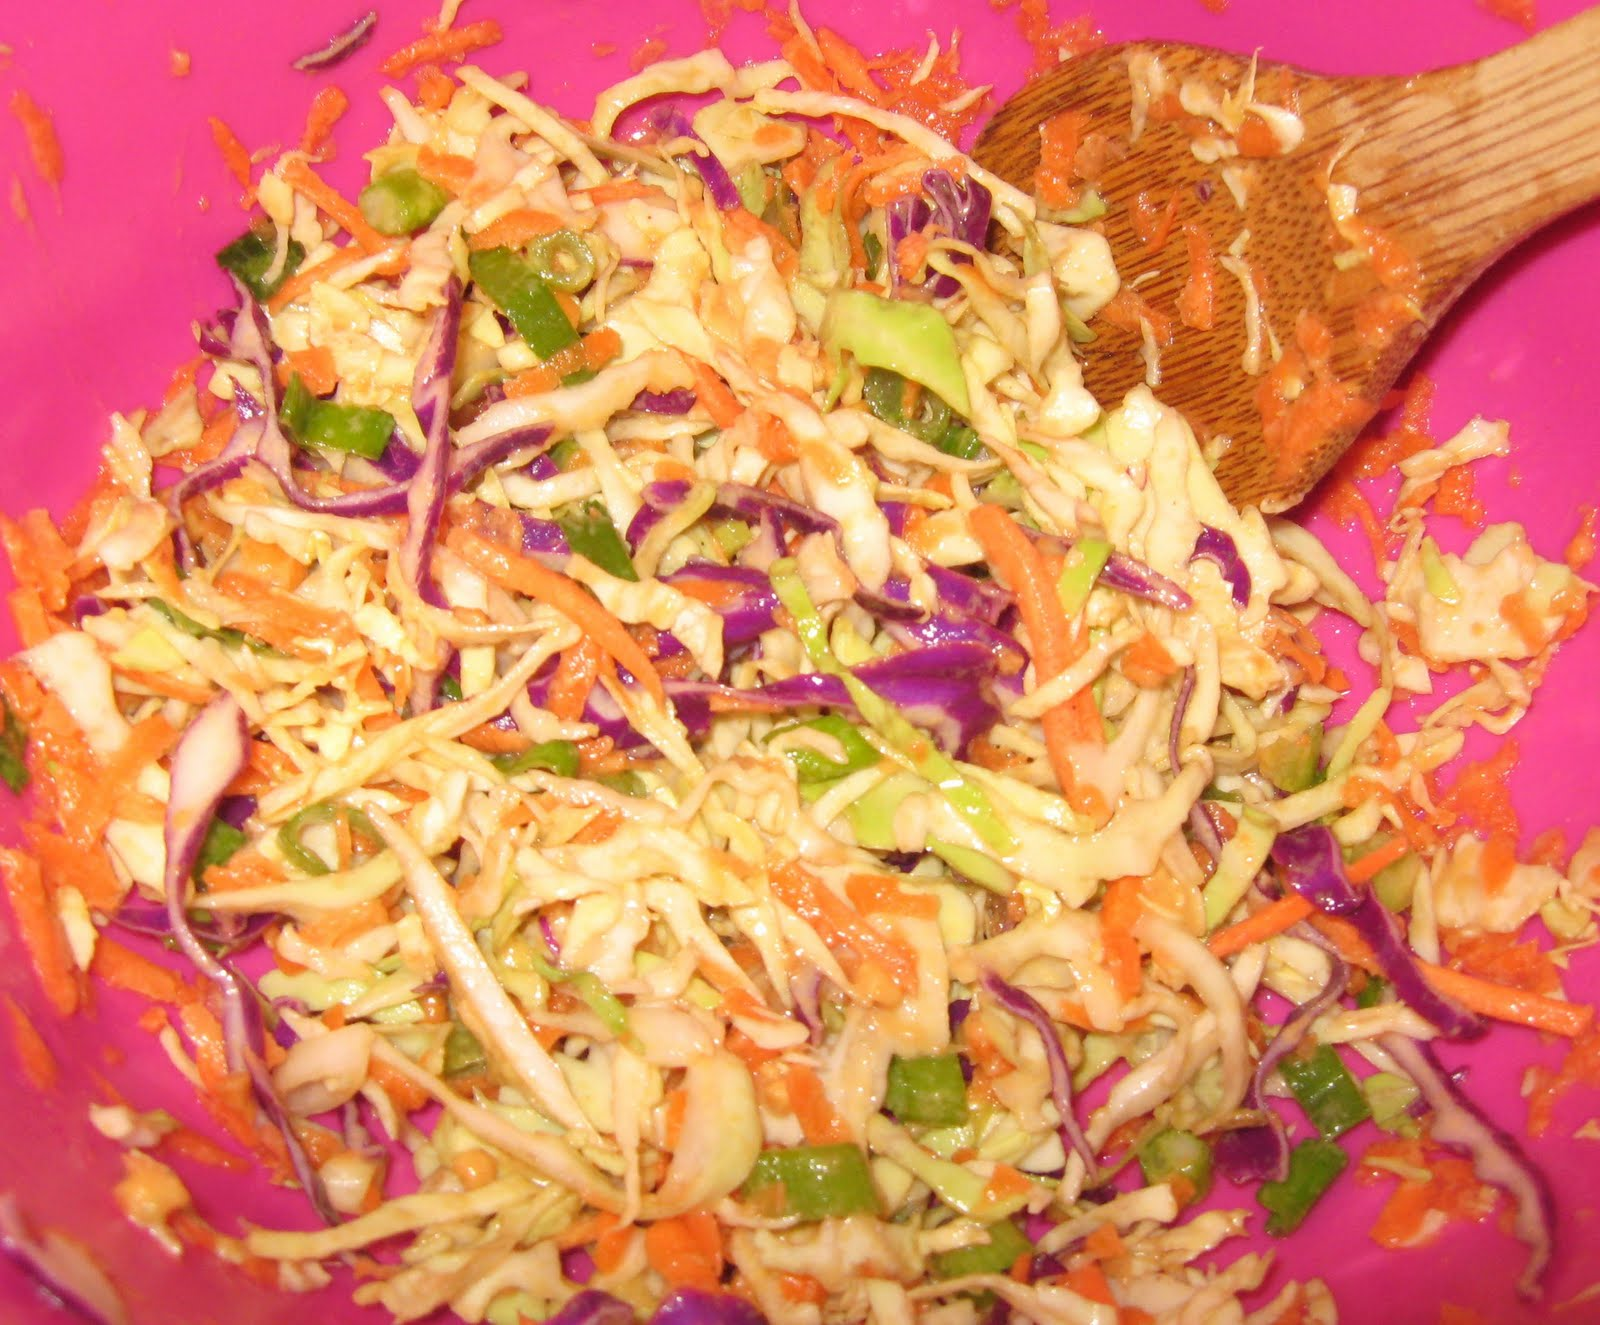 ... coleslaw pulled pork sandwiches with coleslaw asian coleslaw recipe